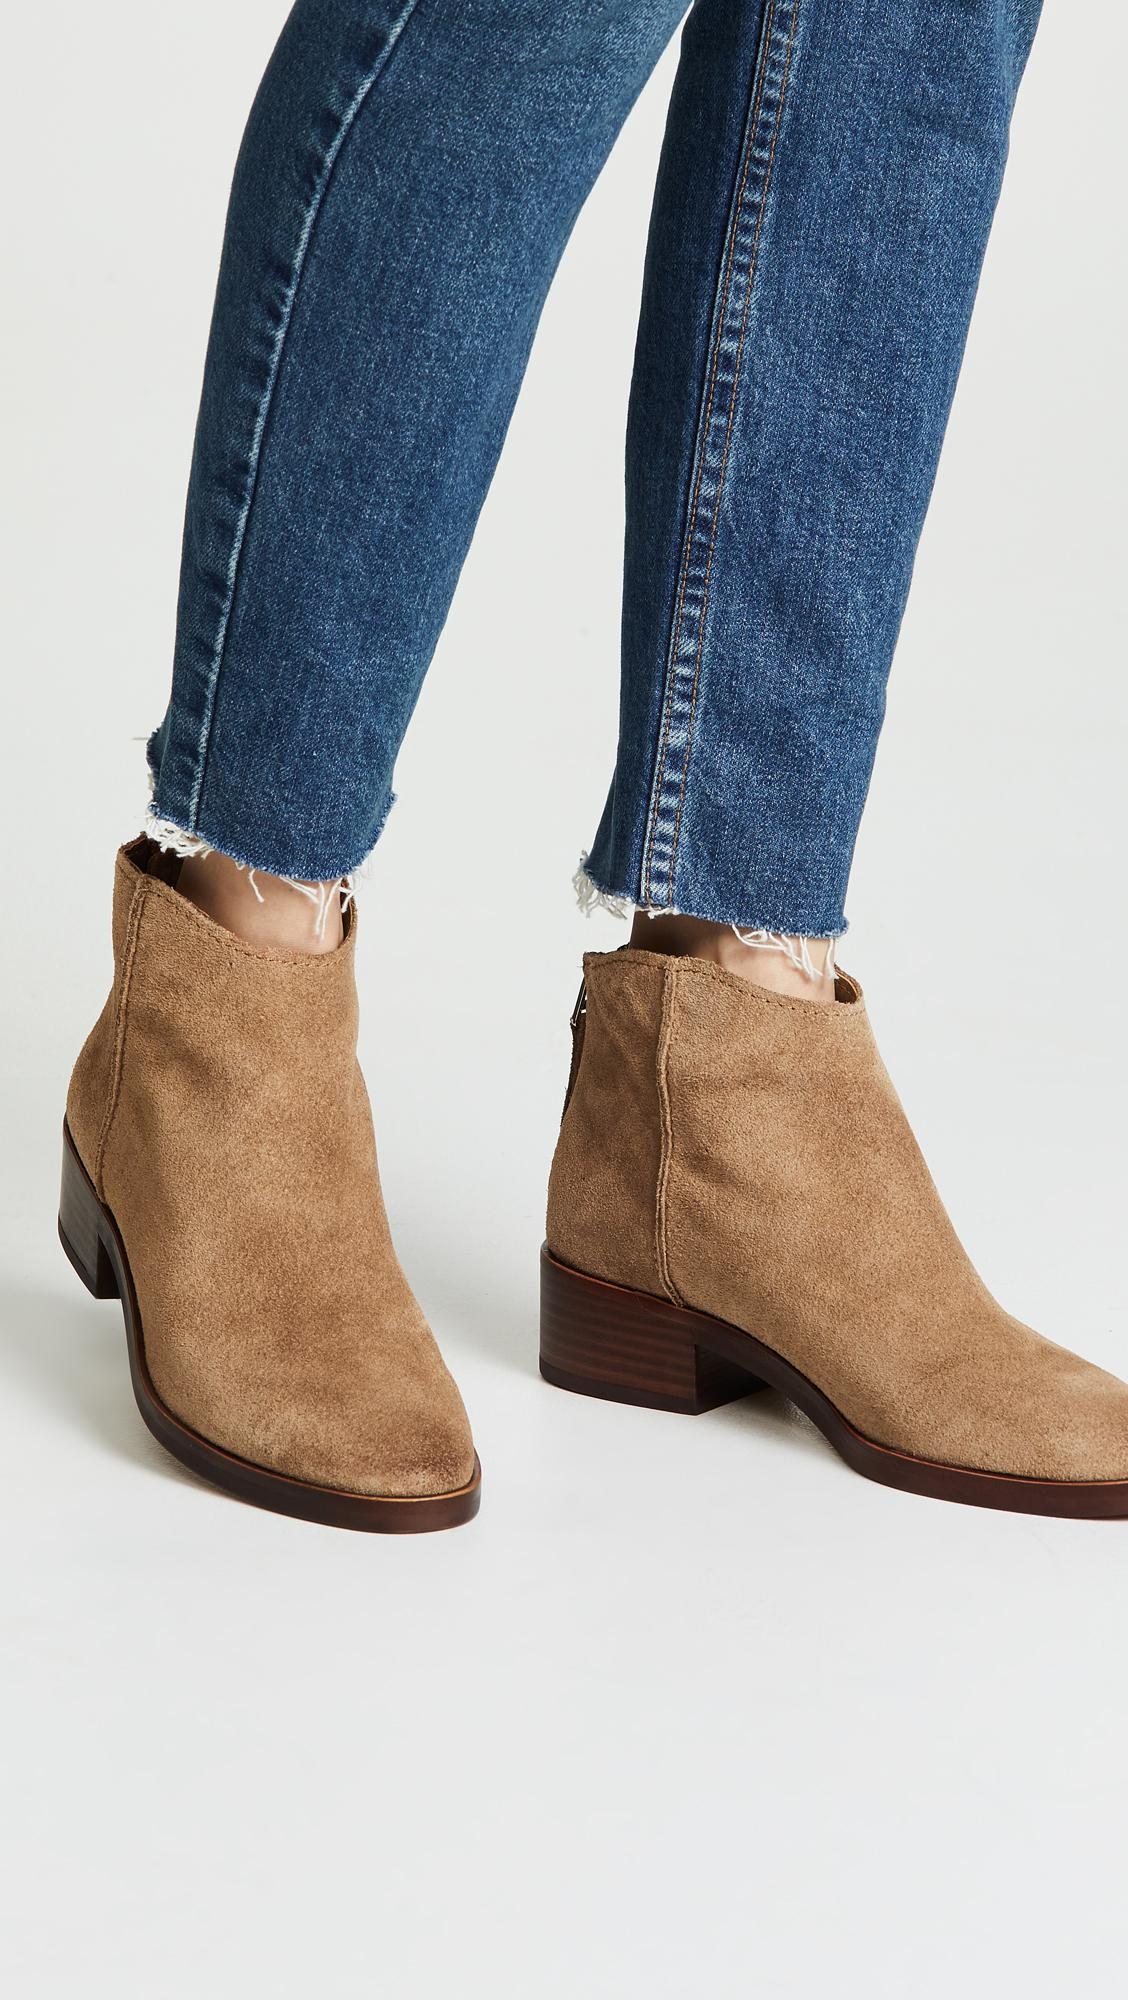 e7a4a2a570f Dolce Vita Tucker Booties in Brown - Lyst